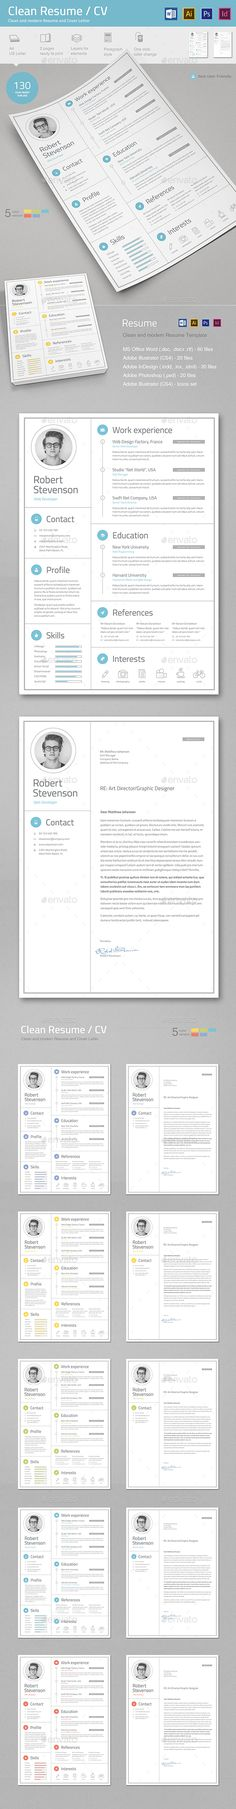 Resume/CV by TypoEdition Resume/CV. This is a modern and powerful template for a Resume and Cover Letter. Other Resume in my portfolio: Features Ready